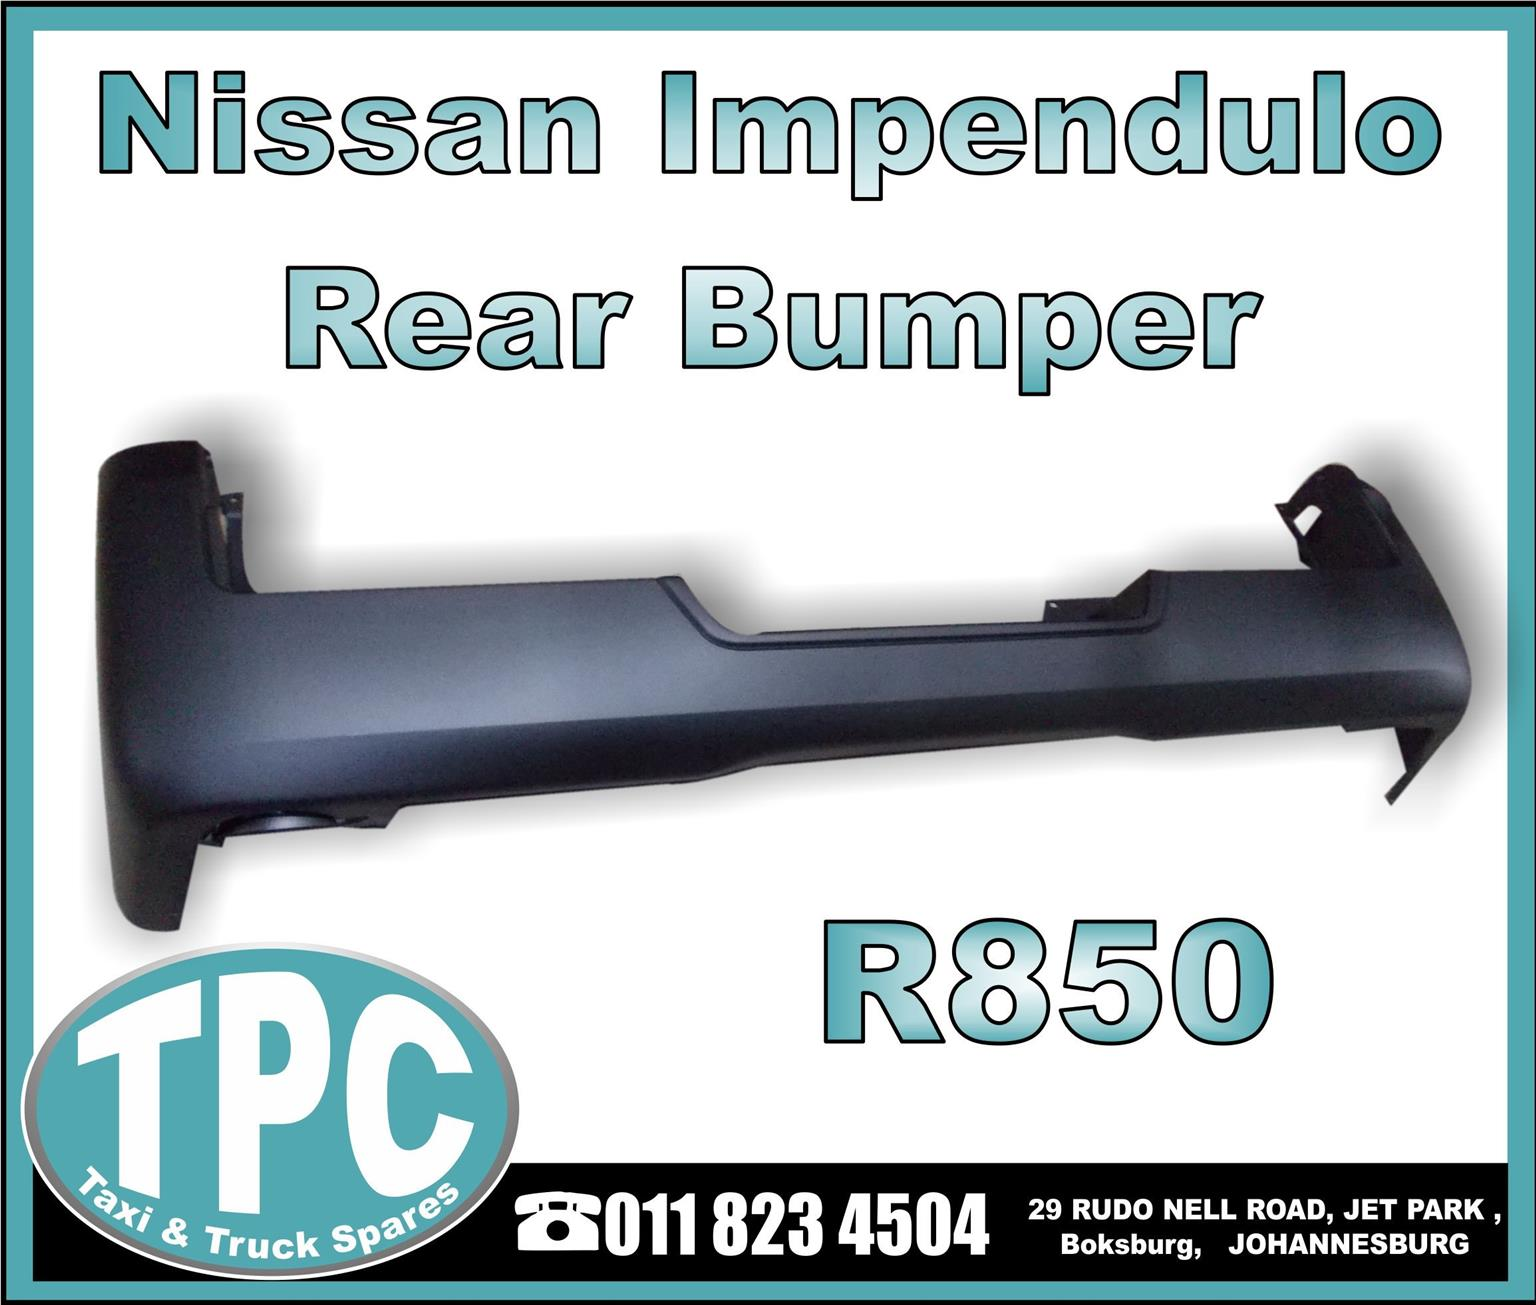 Nissan Impendulo Rear Bumper - New Replacement Parts.